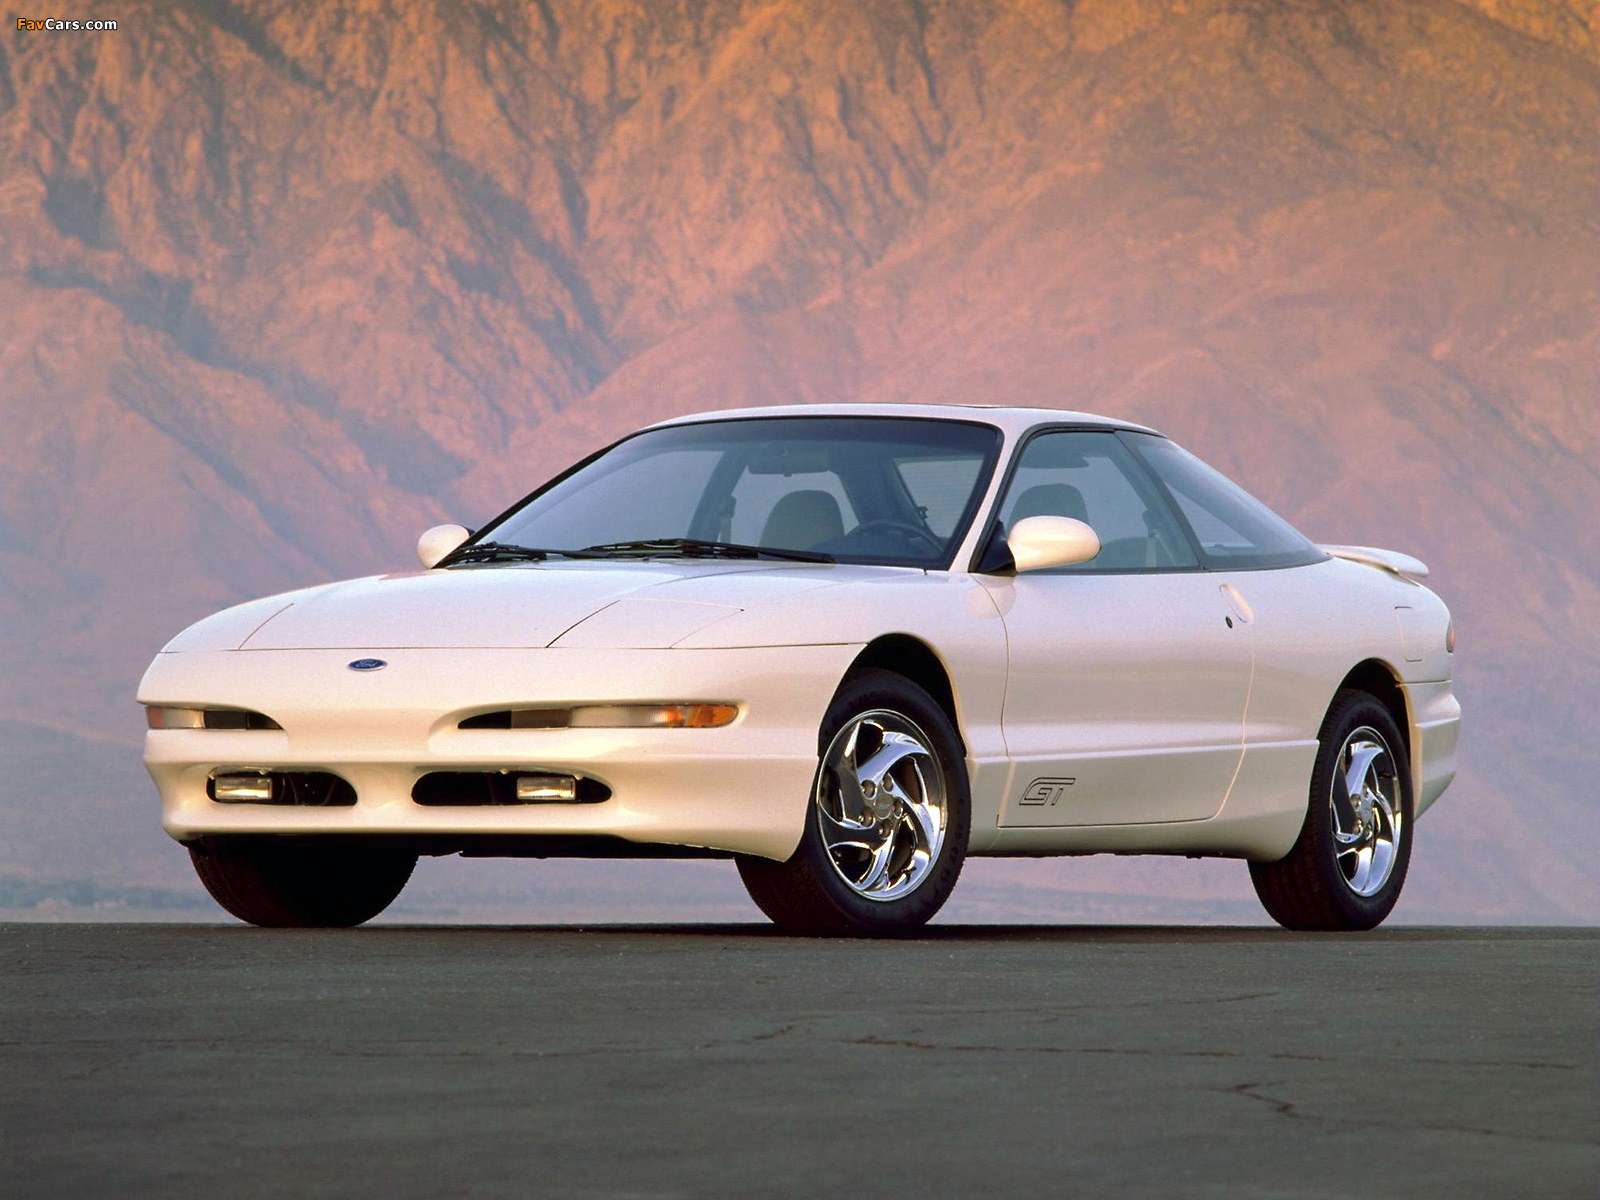 Ford Probe #8